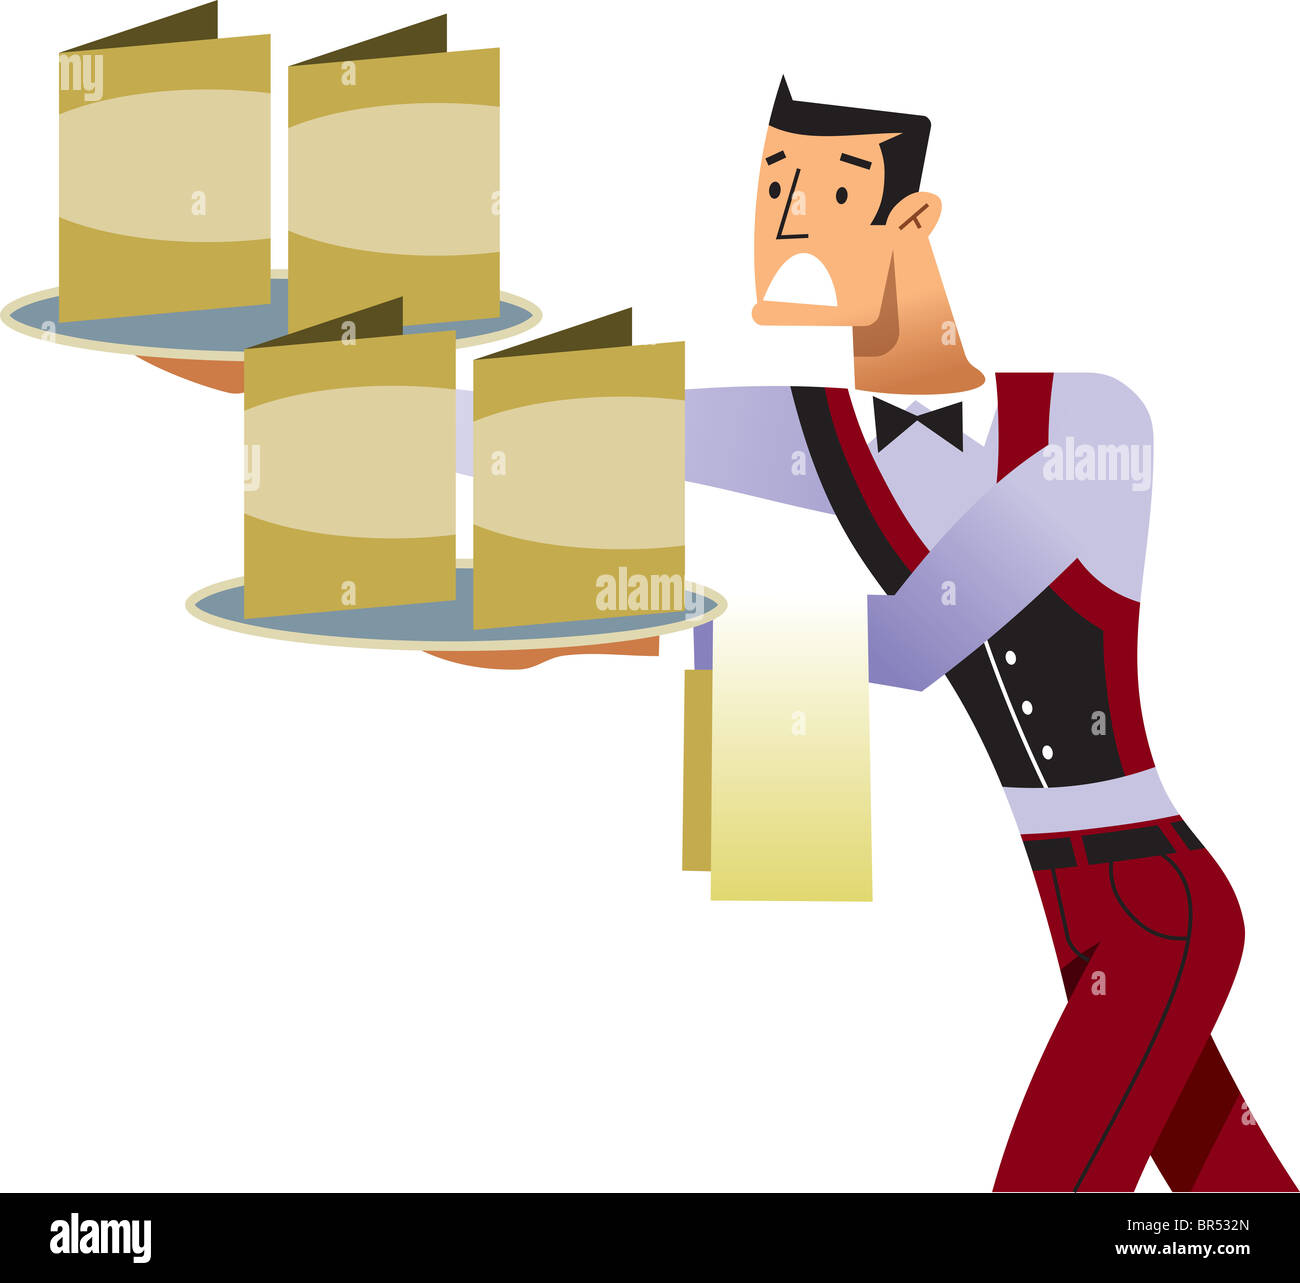 A waiter trying to balance menus on trays - Stock Image